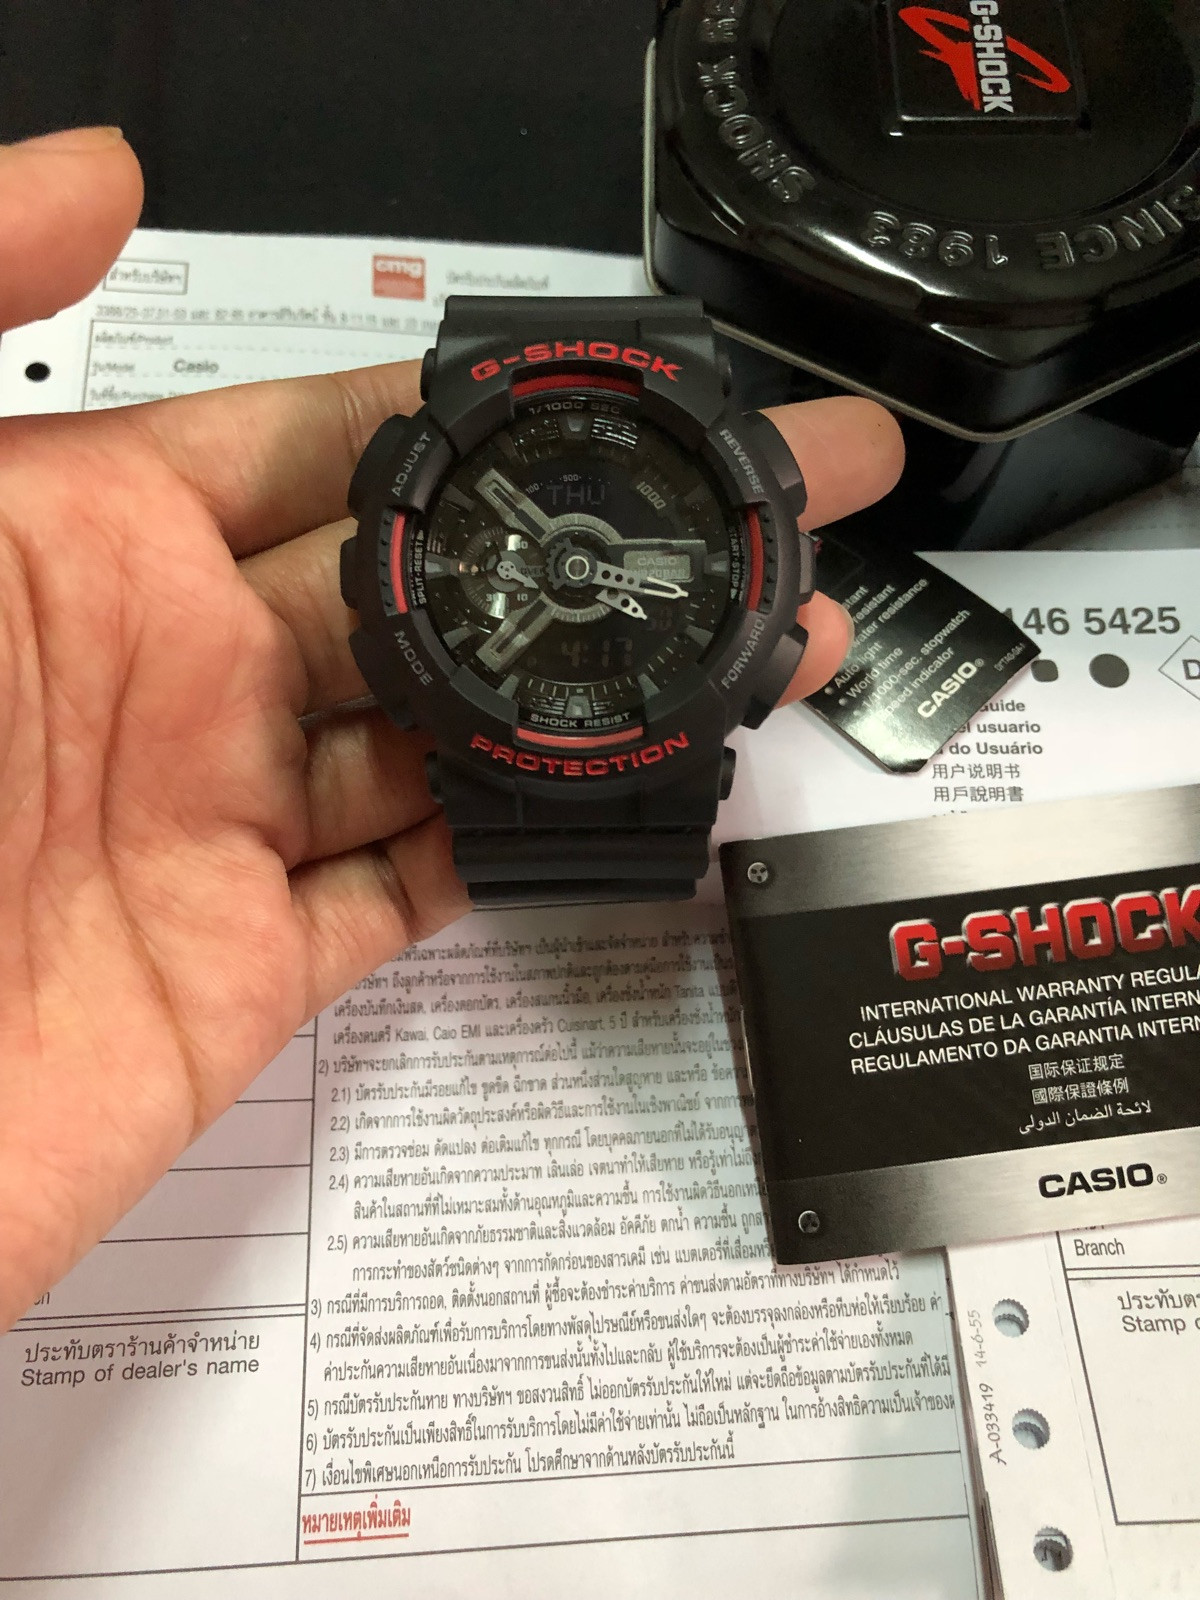 Montres Casio G SHOCK 5146 d'occasion (€97) Timepeaks  6pZzy